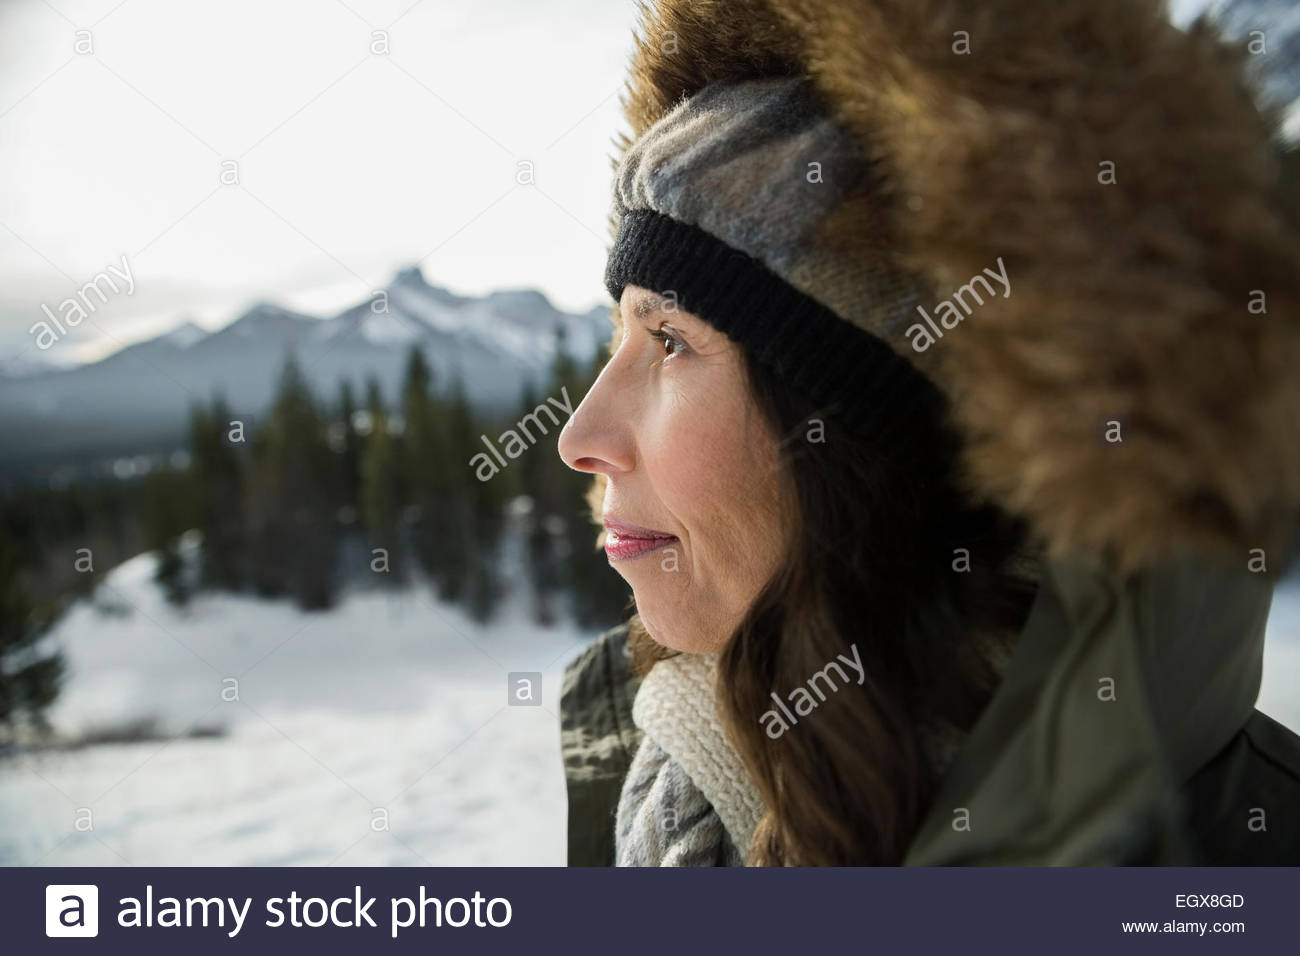 Close up of serious woman in fur hood Photo Stock